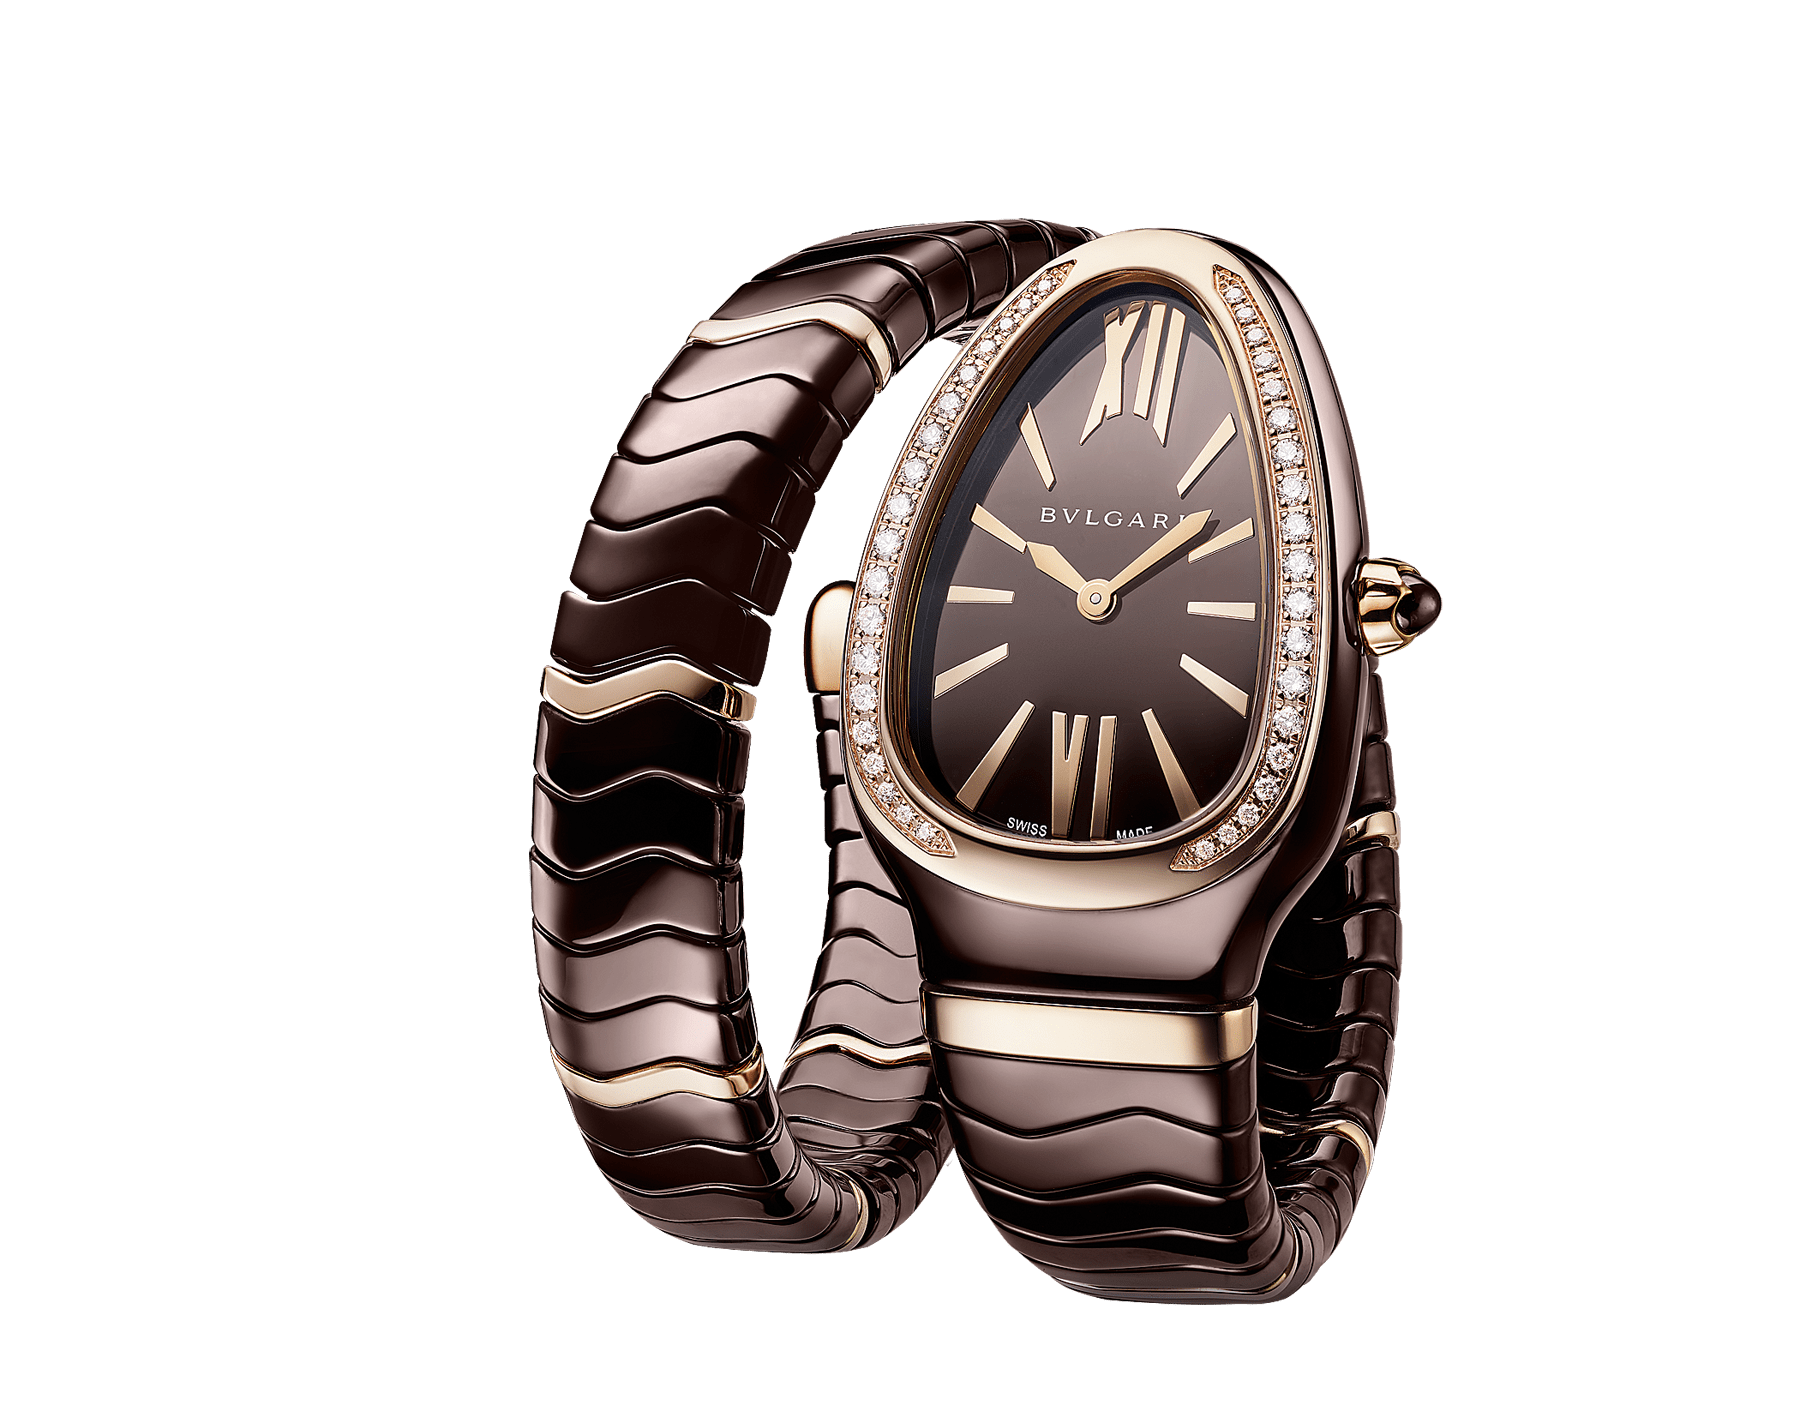 Serpenti Spiga single-spiral watch with treated ceramic case, 18 kt rose gold bezel set with diamonds, brown dial and treated ceramic bracelet with 18 kt rose gold elements 103060 image 2